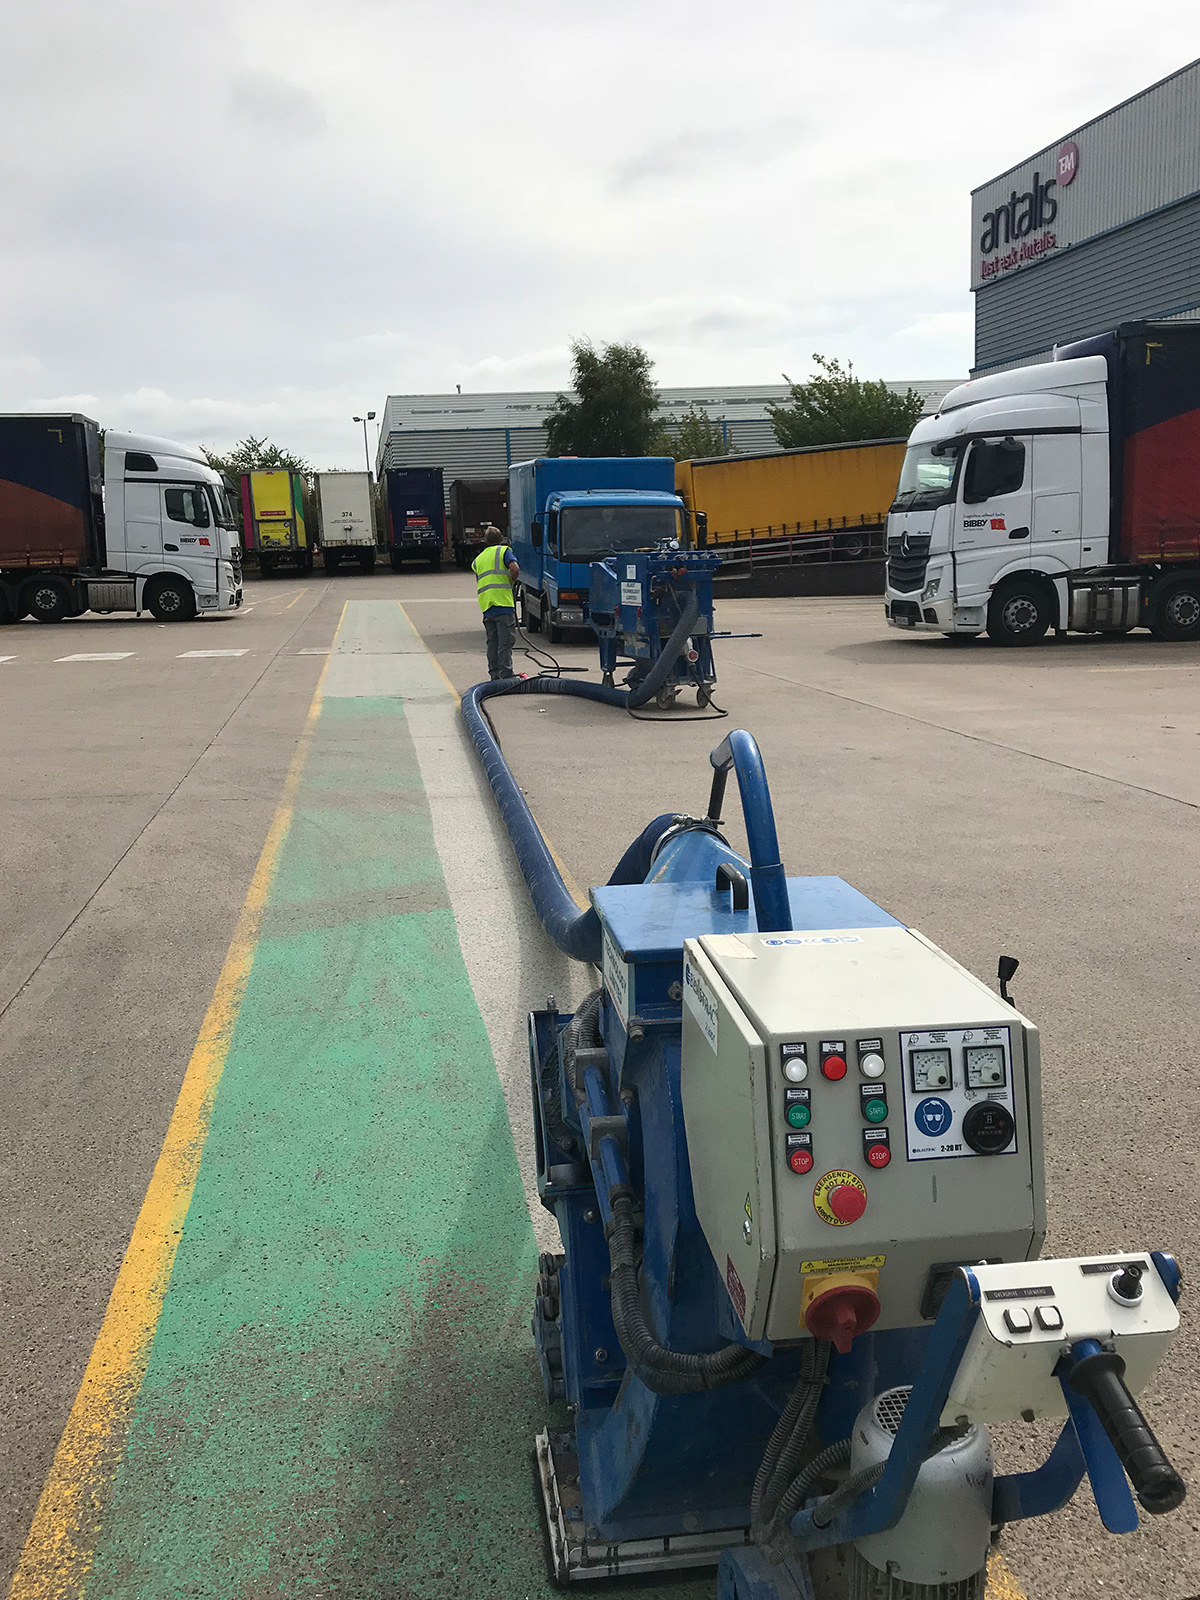 removing road markings paint from carpark